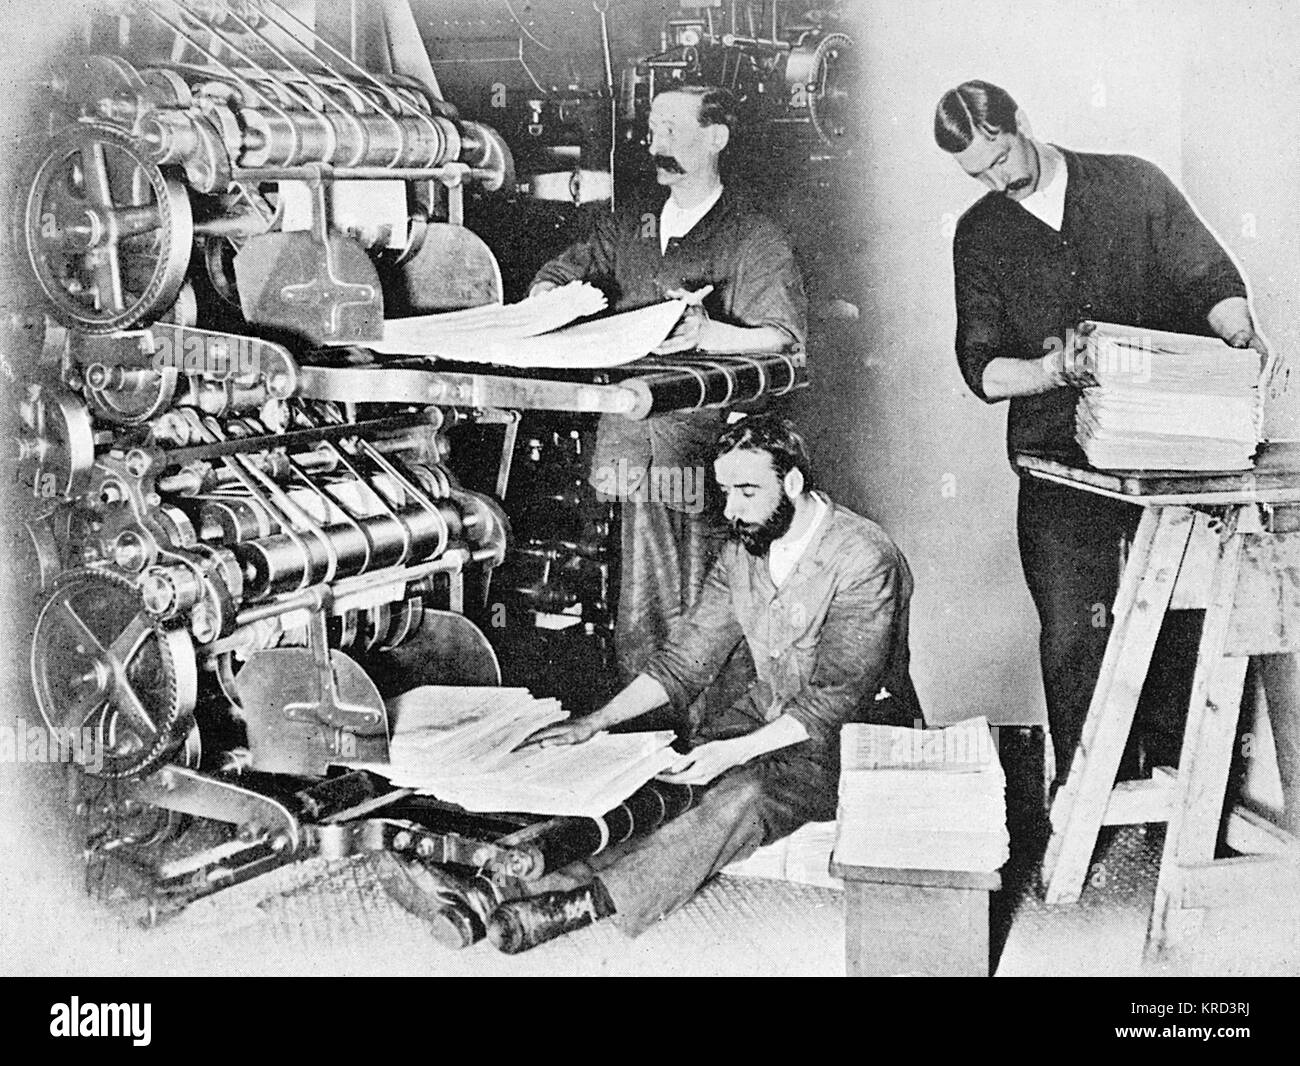 Newspapers coming off the printing press and gathered and counted by two men while the man on the right removes - Stock Image